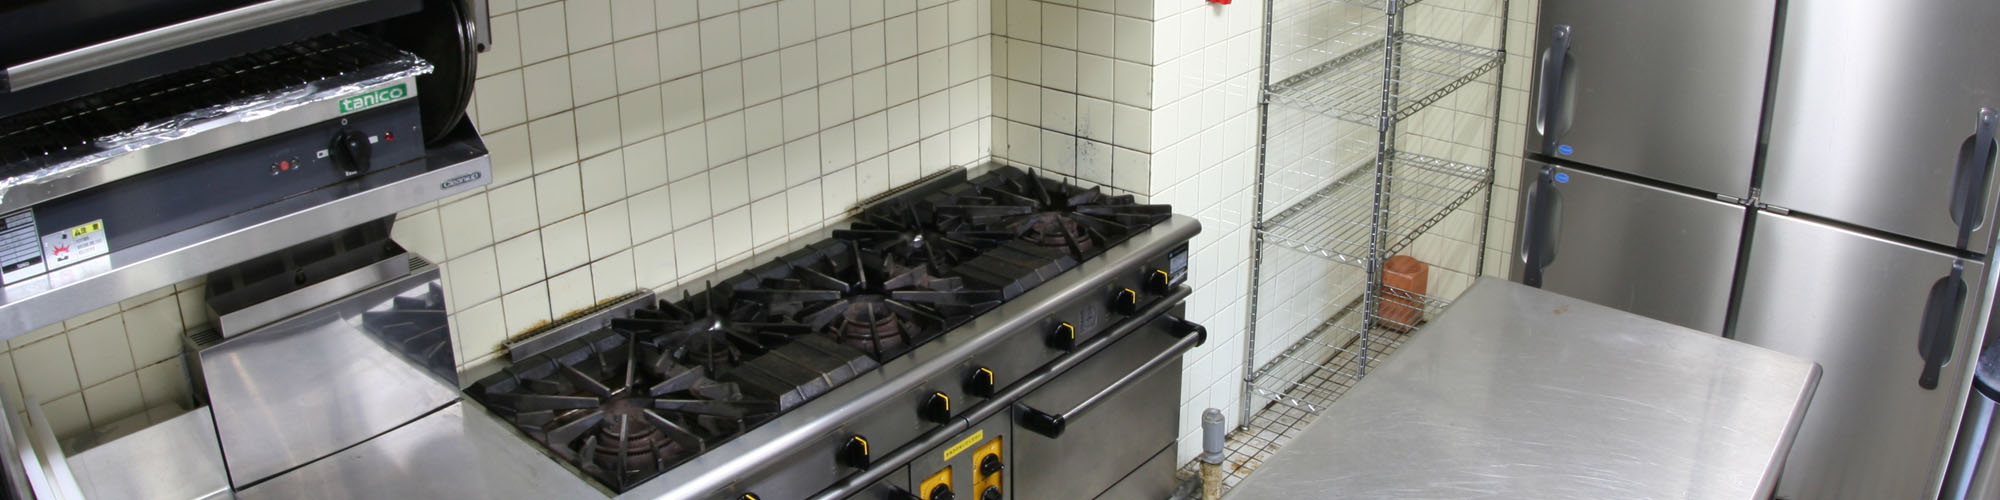 foodservice equipment installation company in dubai